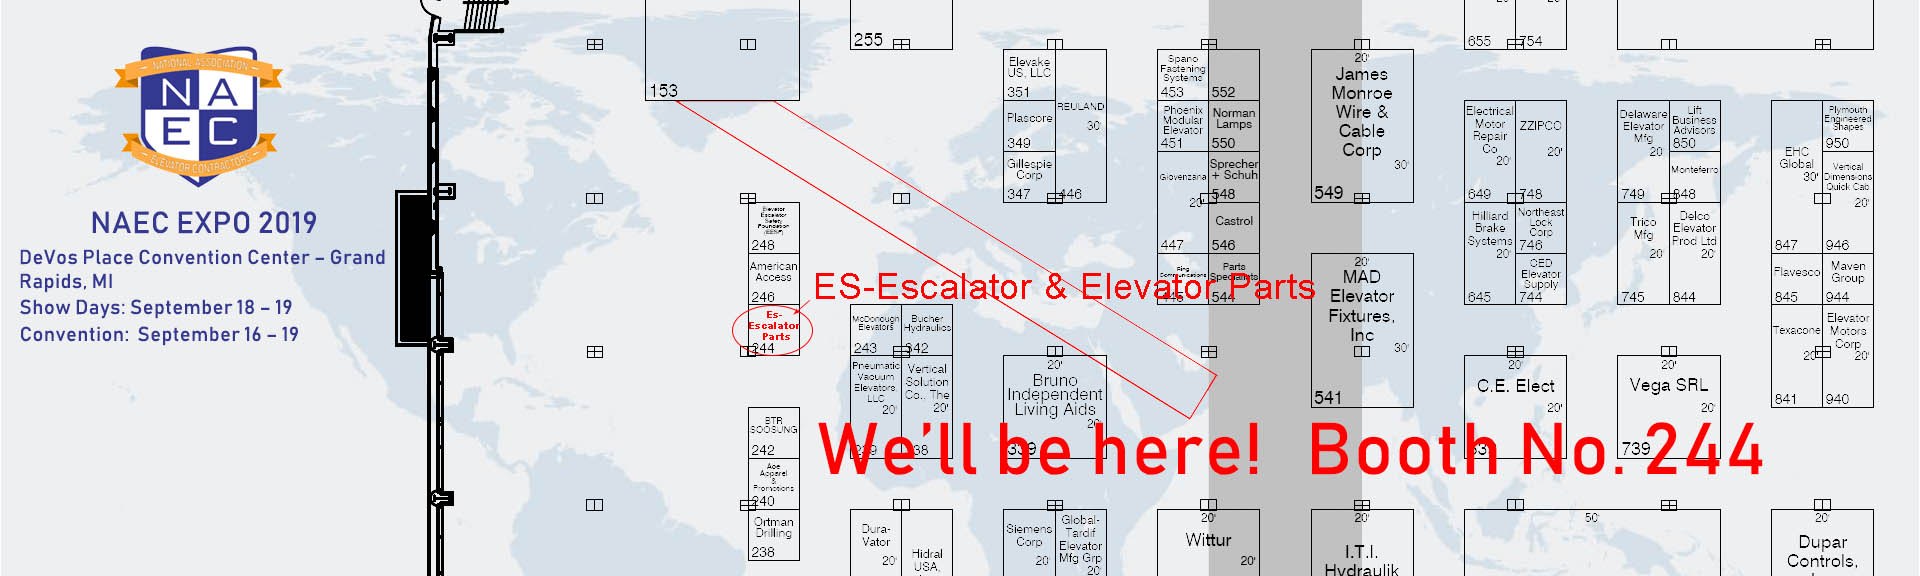 NAEC EXPO 2019-Es Escalator & Elevator Parts